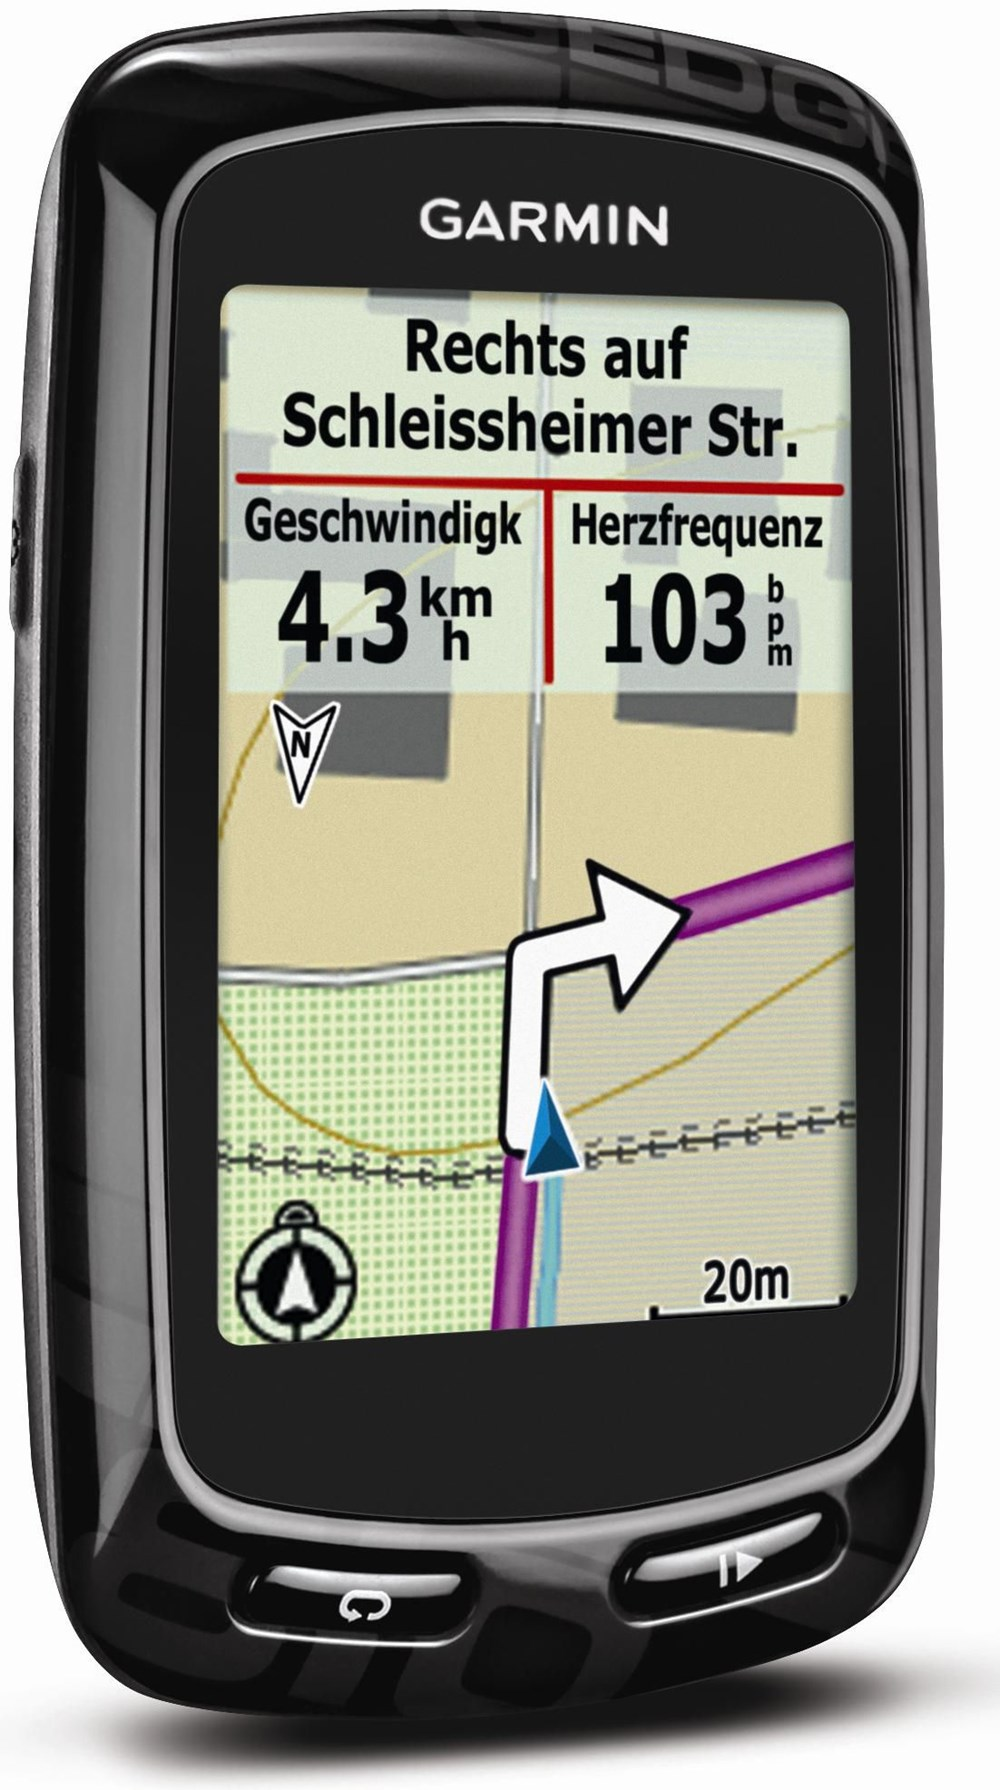 garmin edge 810 fahrrad gps sportuhren fahrradcomputer. Black Bedroom Furniture Sets. Home Design Ideas